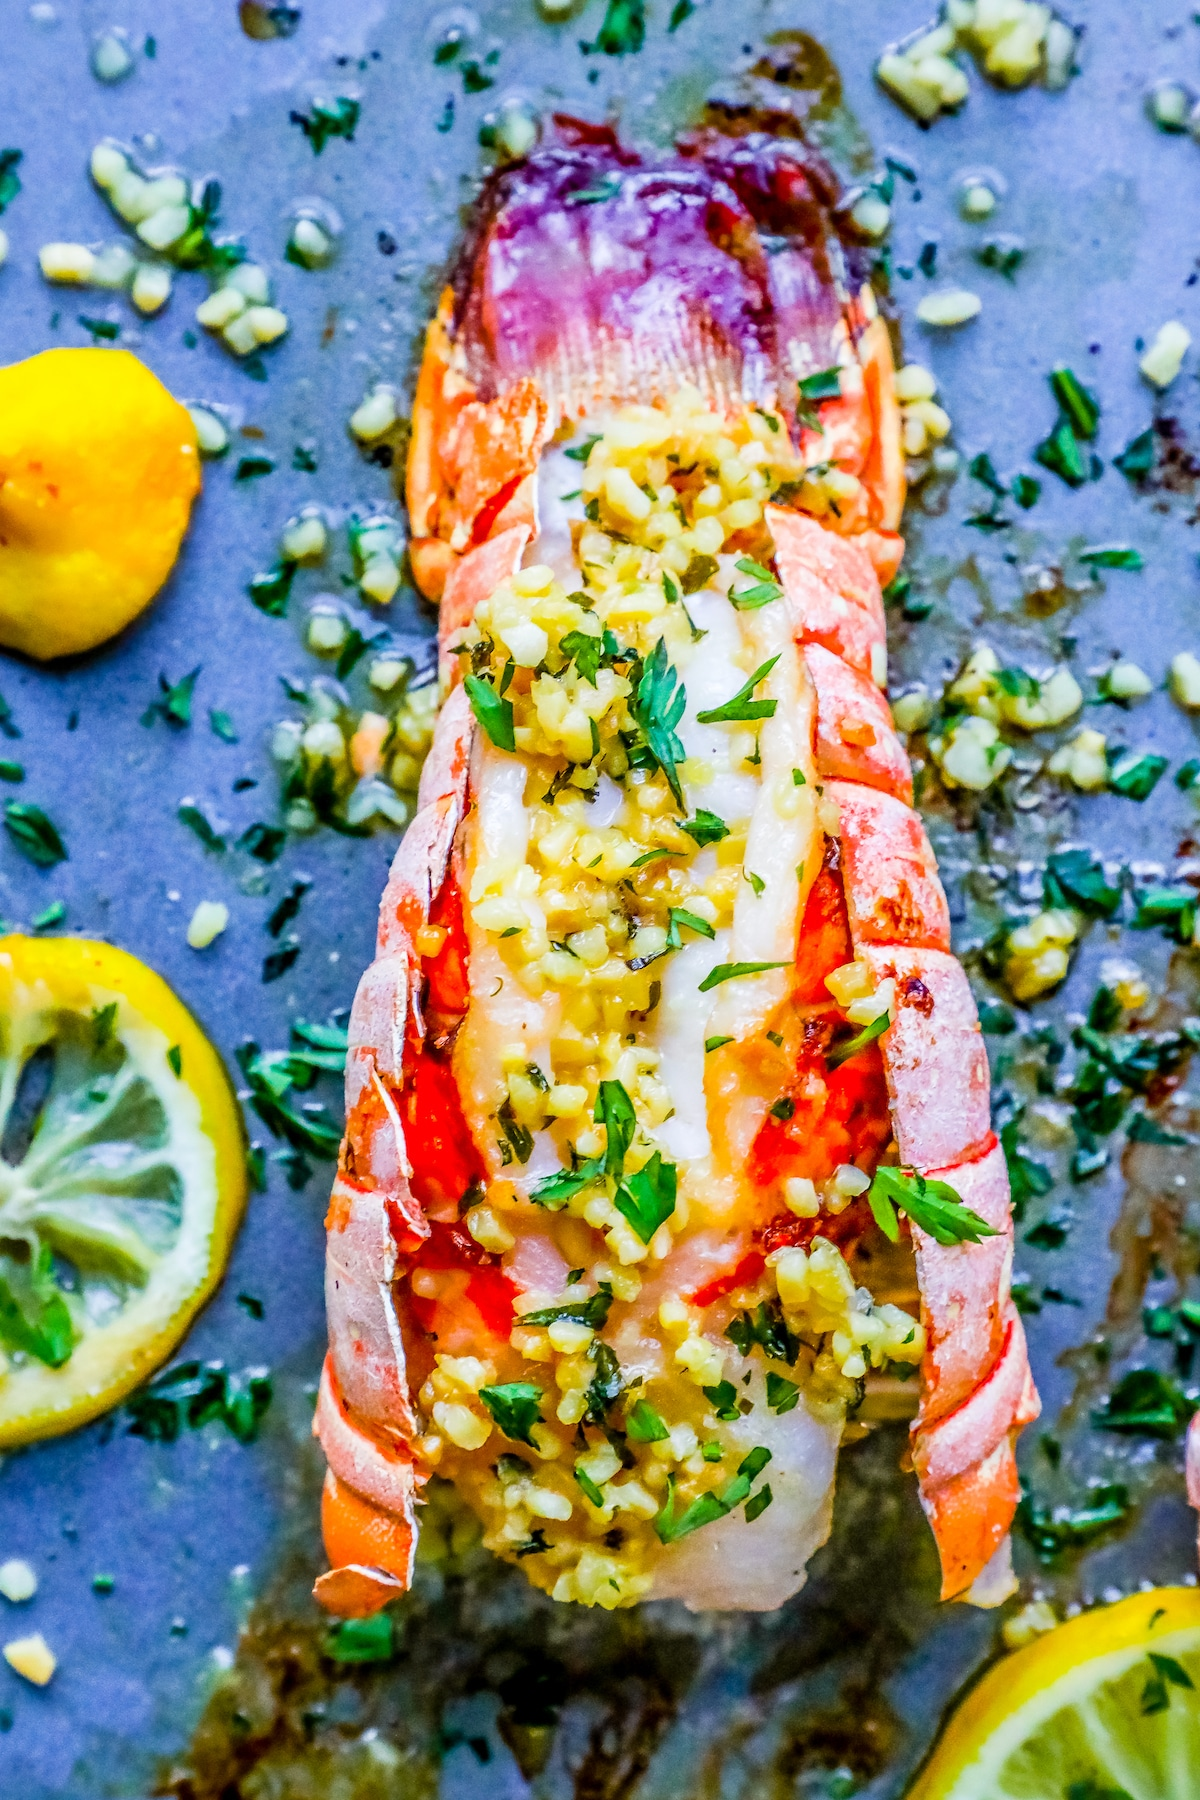 lobster tails, how to cook lobster, valentines lobster dinner, easy lobster, oven lobster, how to cook lobster in the oven, easy lobster tails, lemon garlic butter lobster tails, lemon garlic lobster, lobster tail recipe, garlic lemon butter lobster recipe